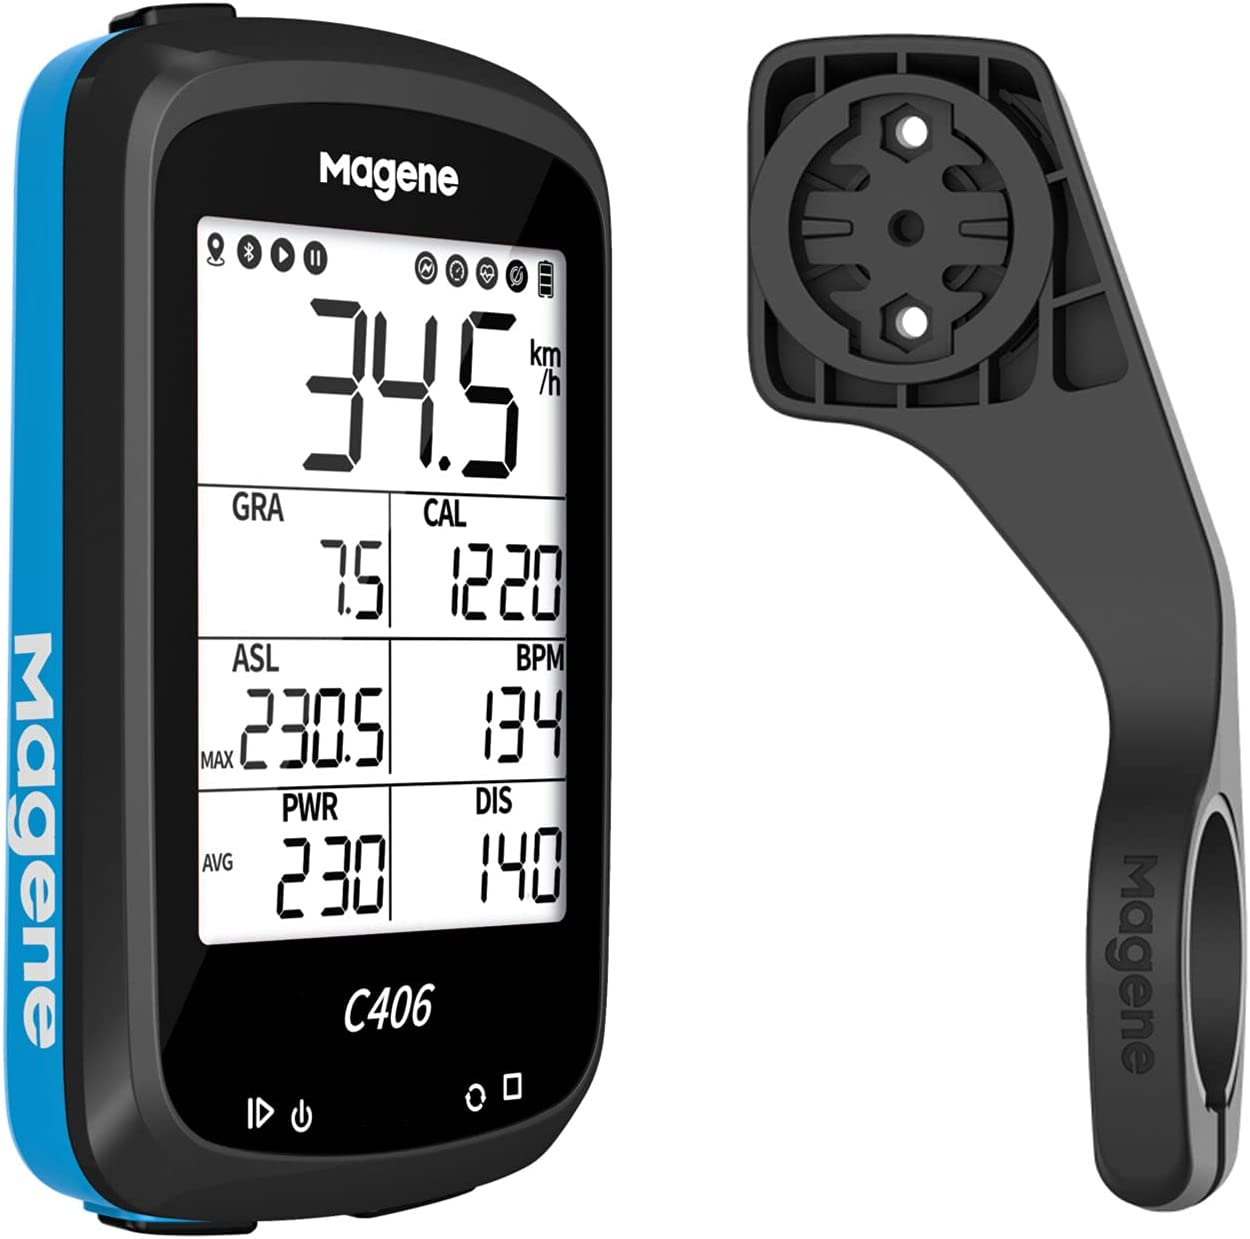 Special price for a limited time Magene C406 Bike Computer Super beauty product restock quality top with Cycling Co GPS Waterproof Holder